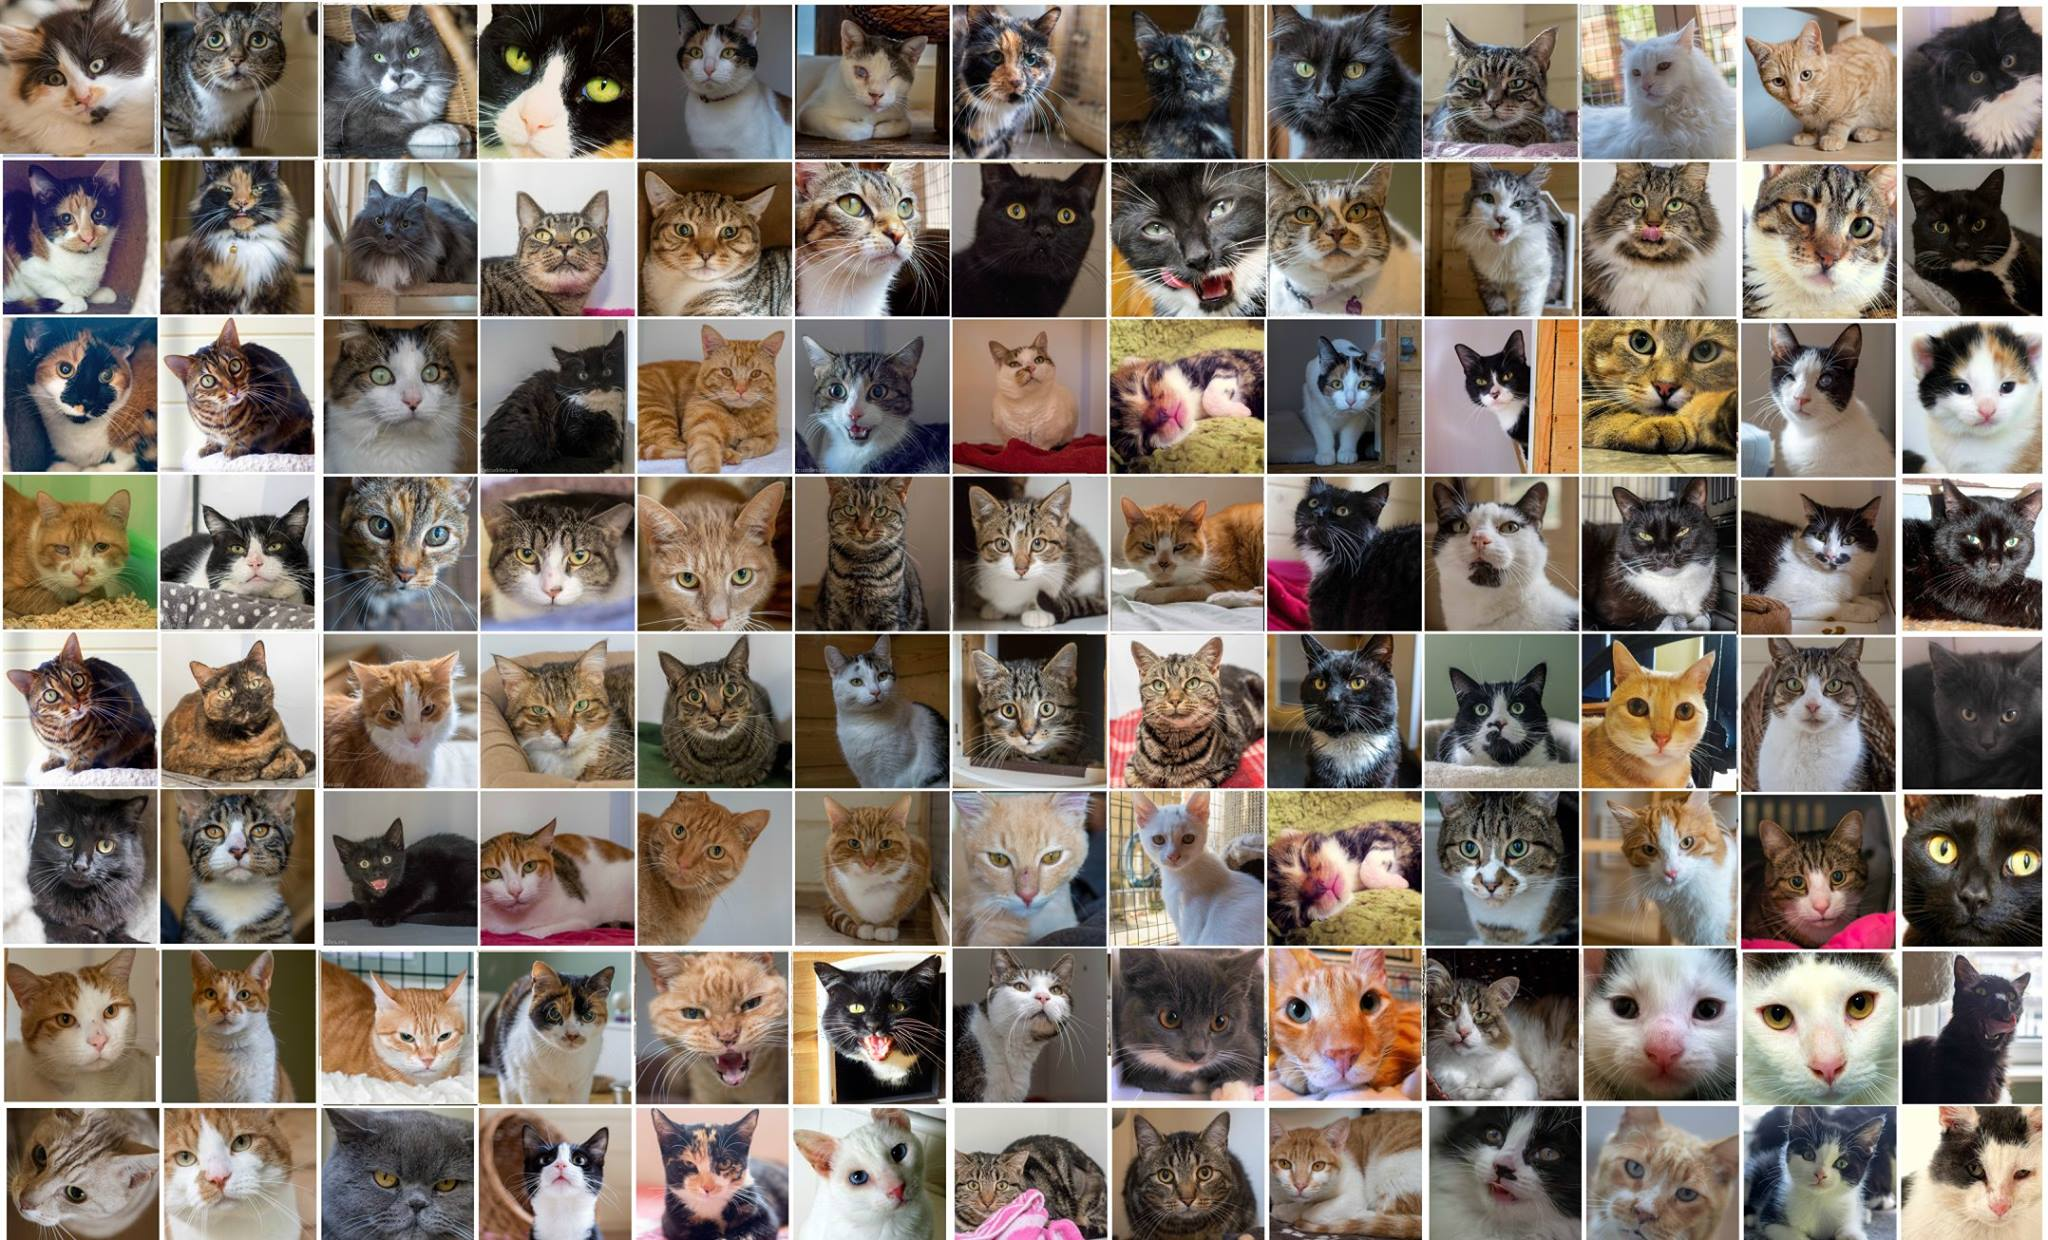 #Save Catcuddles SE2 - The faces that you see here represent only a fraction of the cats that The CatCuddles Sanctuary has helped over the years. Cats who have been neglected, unwanted, abandoned, and cats who have been cherished and loved until circumstances parted them from their owners.For over 7 years, our dedicated Volunteer Team have fought tooth and nail to save every kind of cat, with every kind of story.